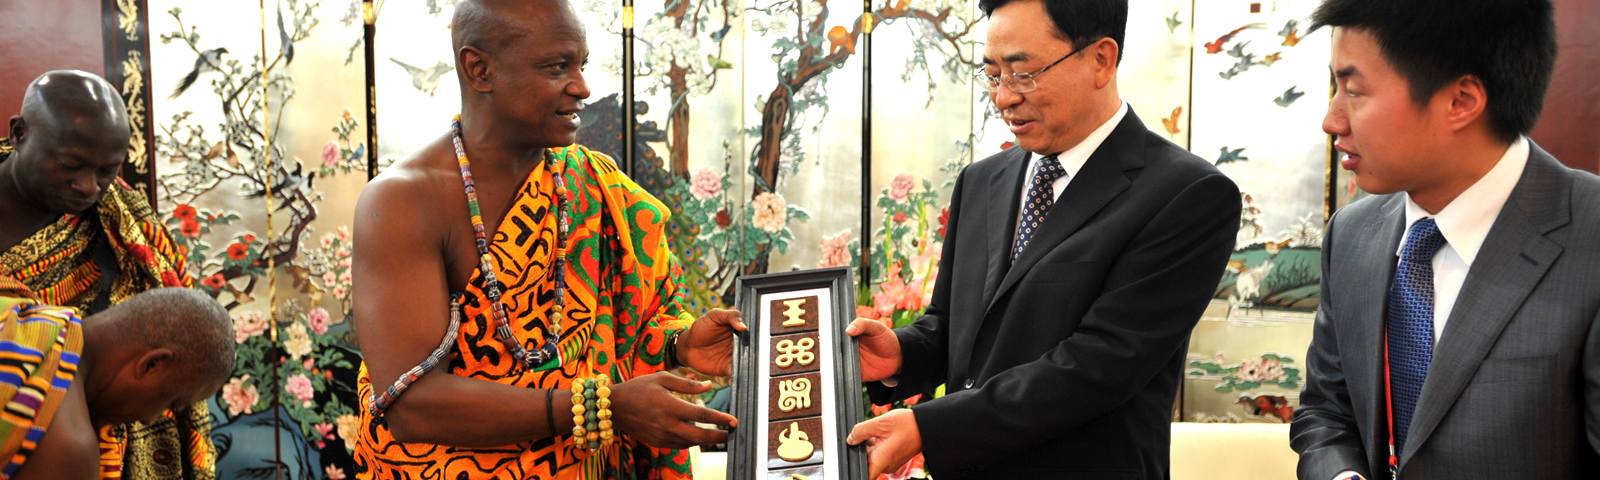 Togbe Afede XIV Exchange Gifts with Chinese